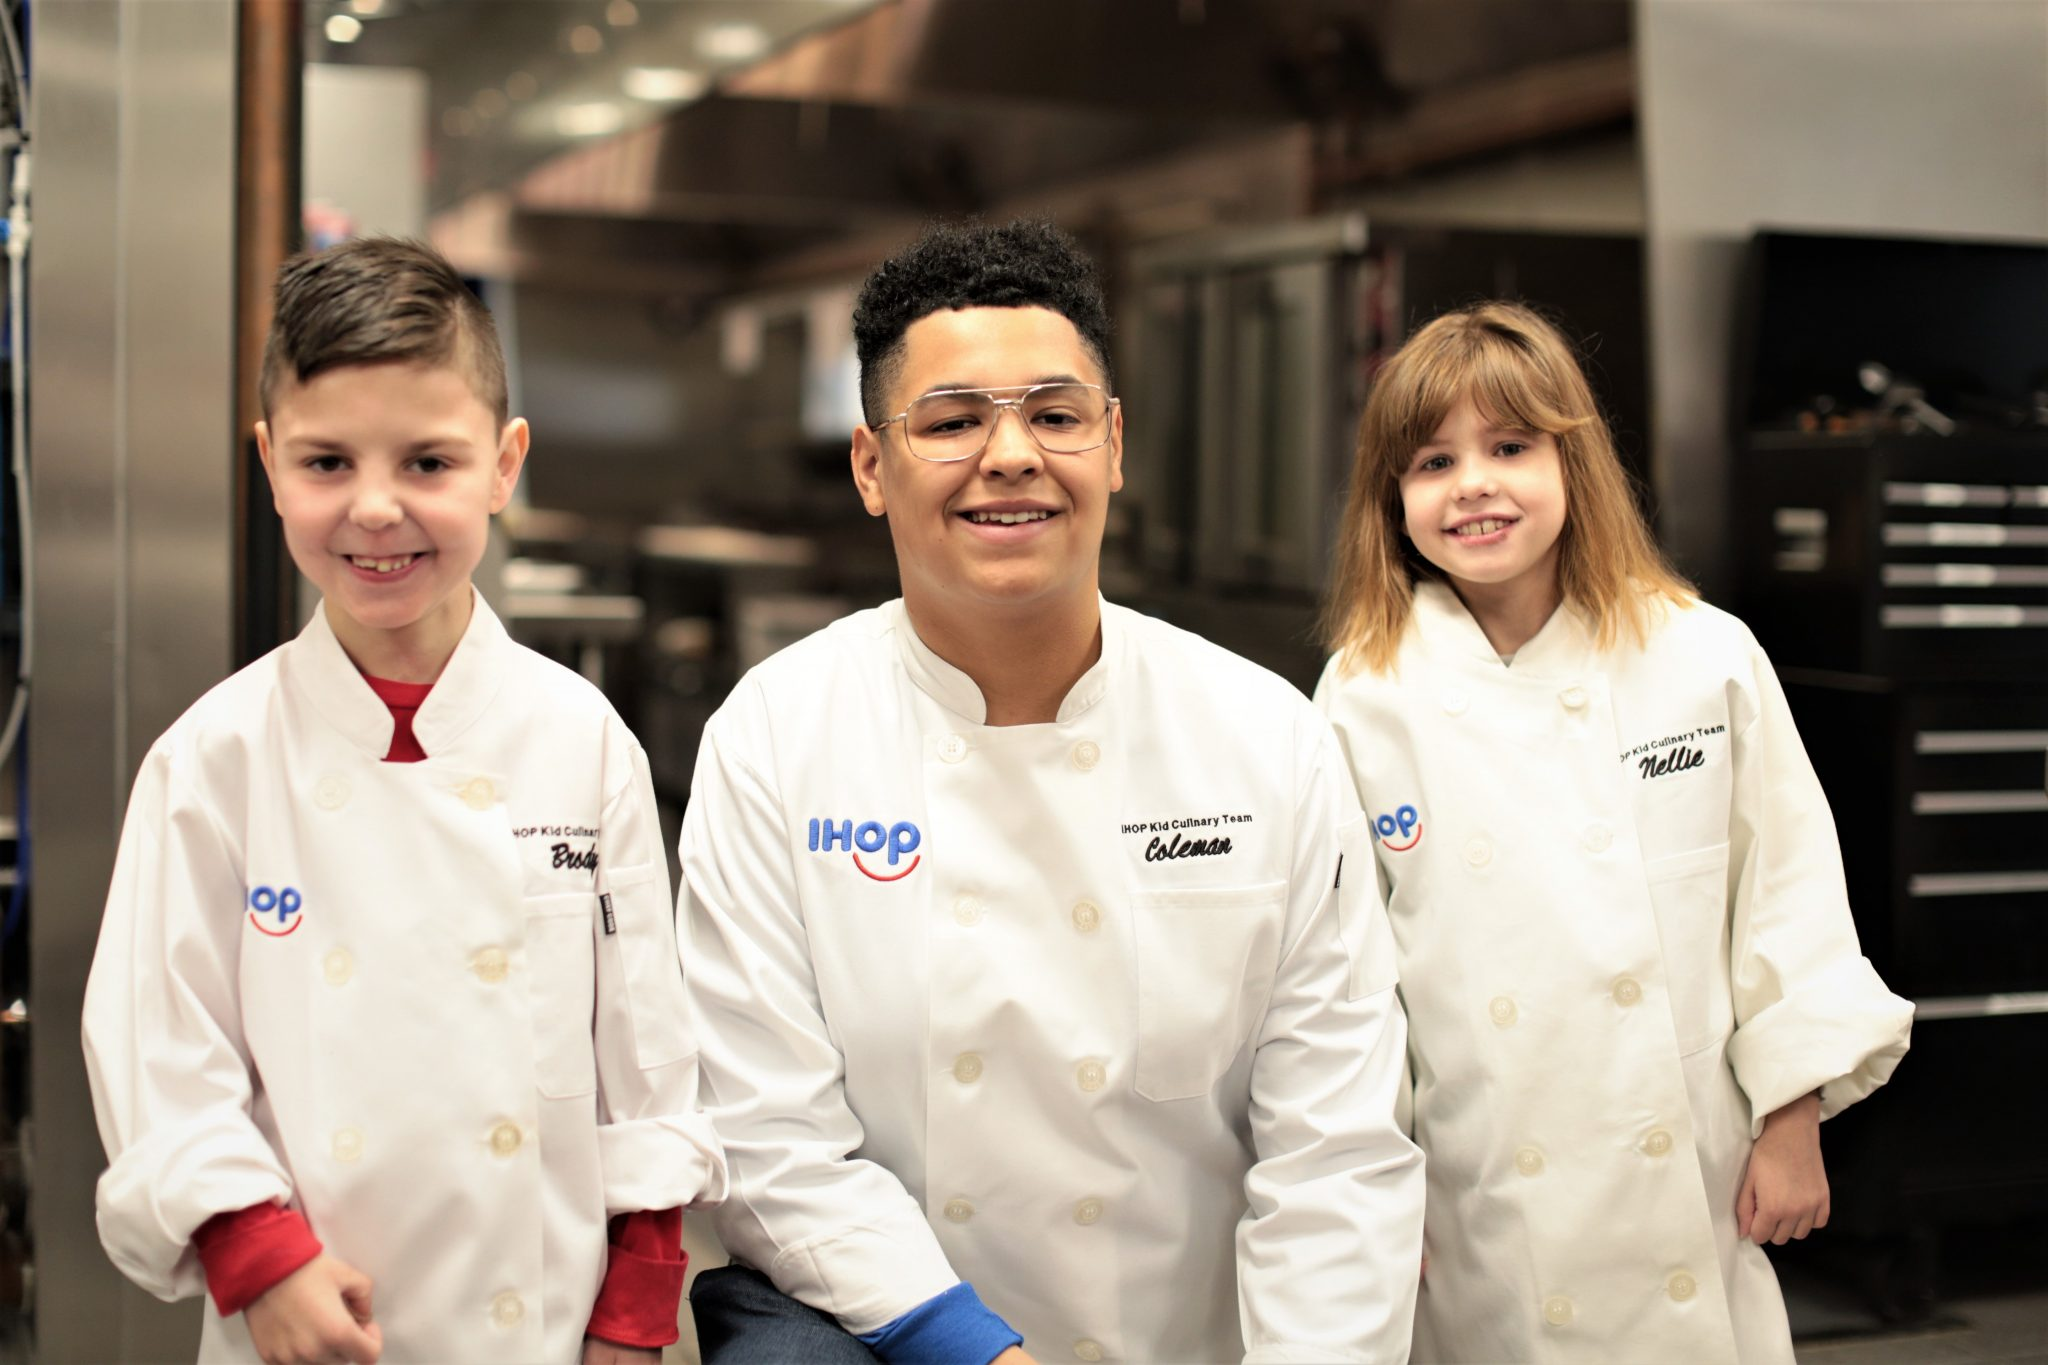 Second annual Kid Chef Team announced in support of IHOP Free Pancake Day – Children's Miracle Network Hospitals